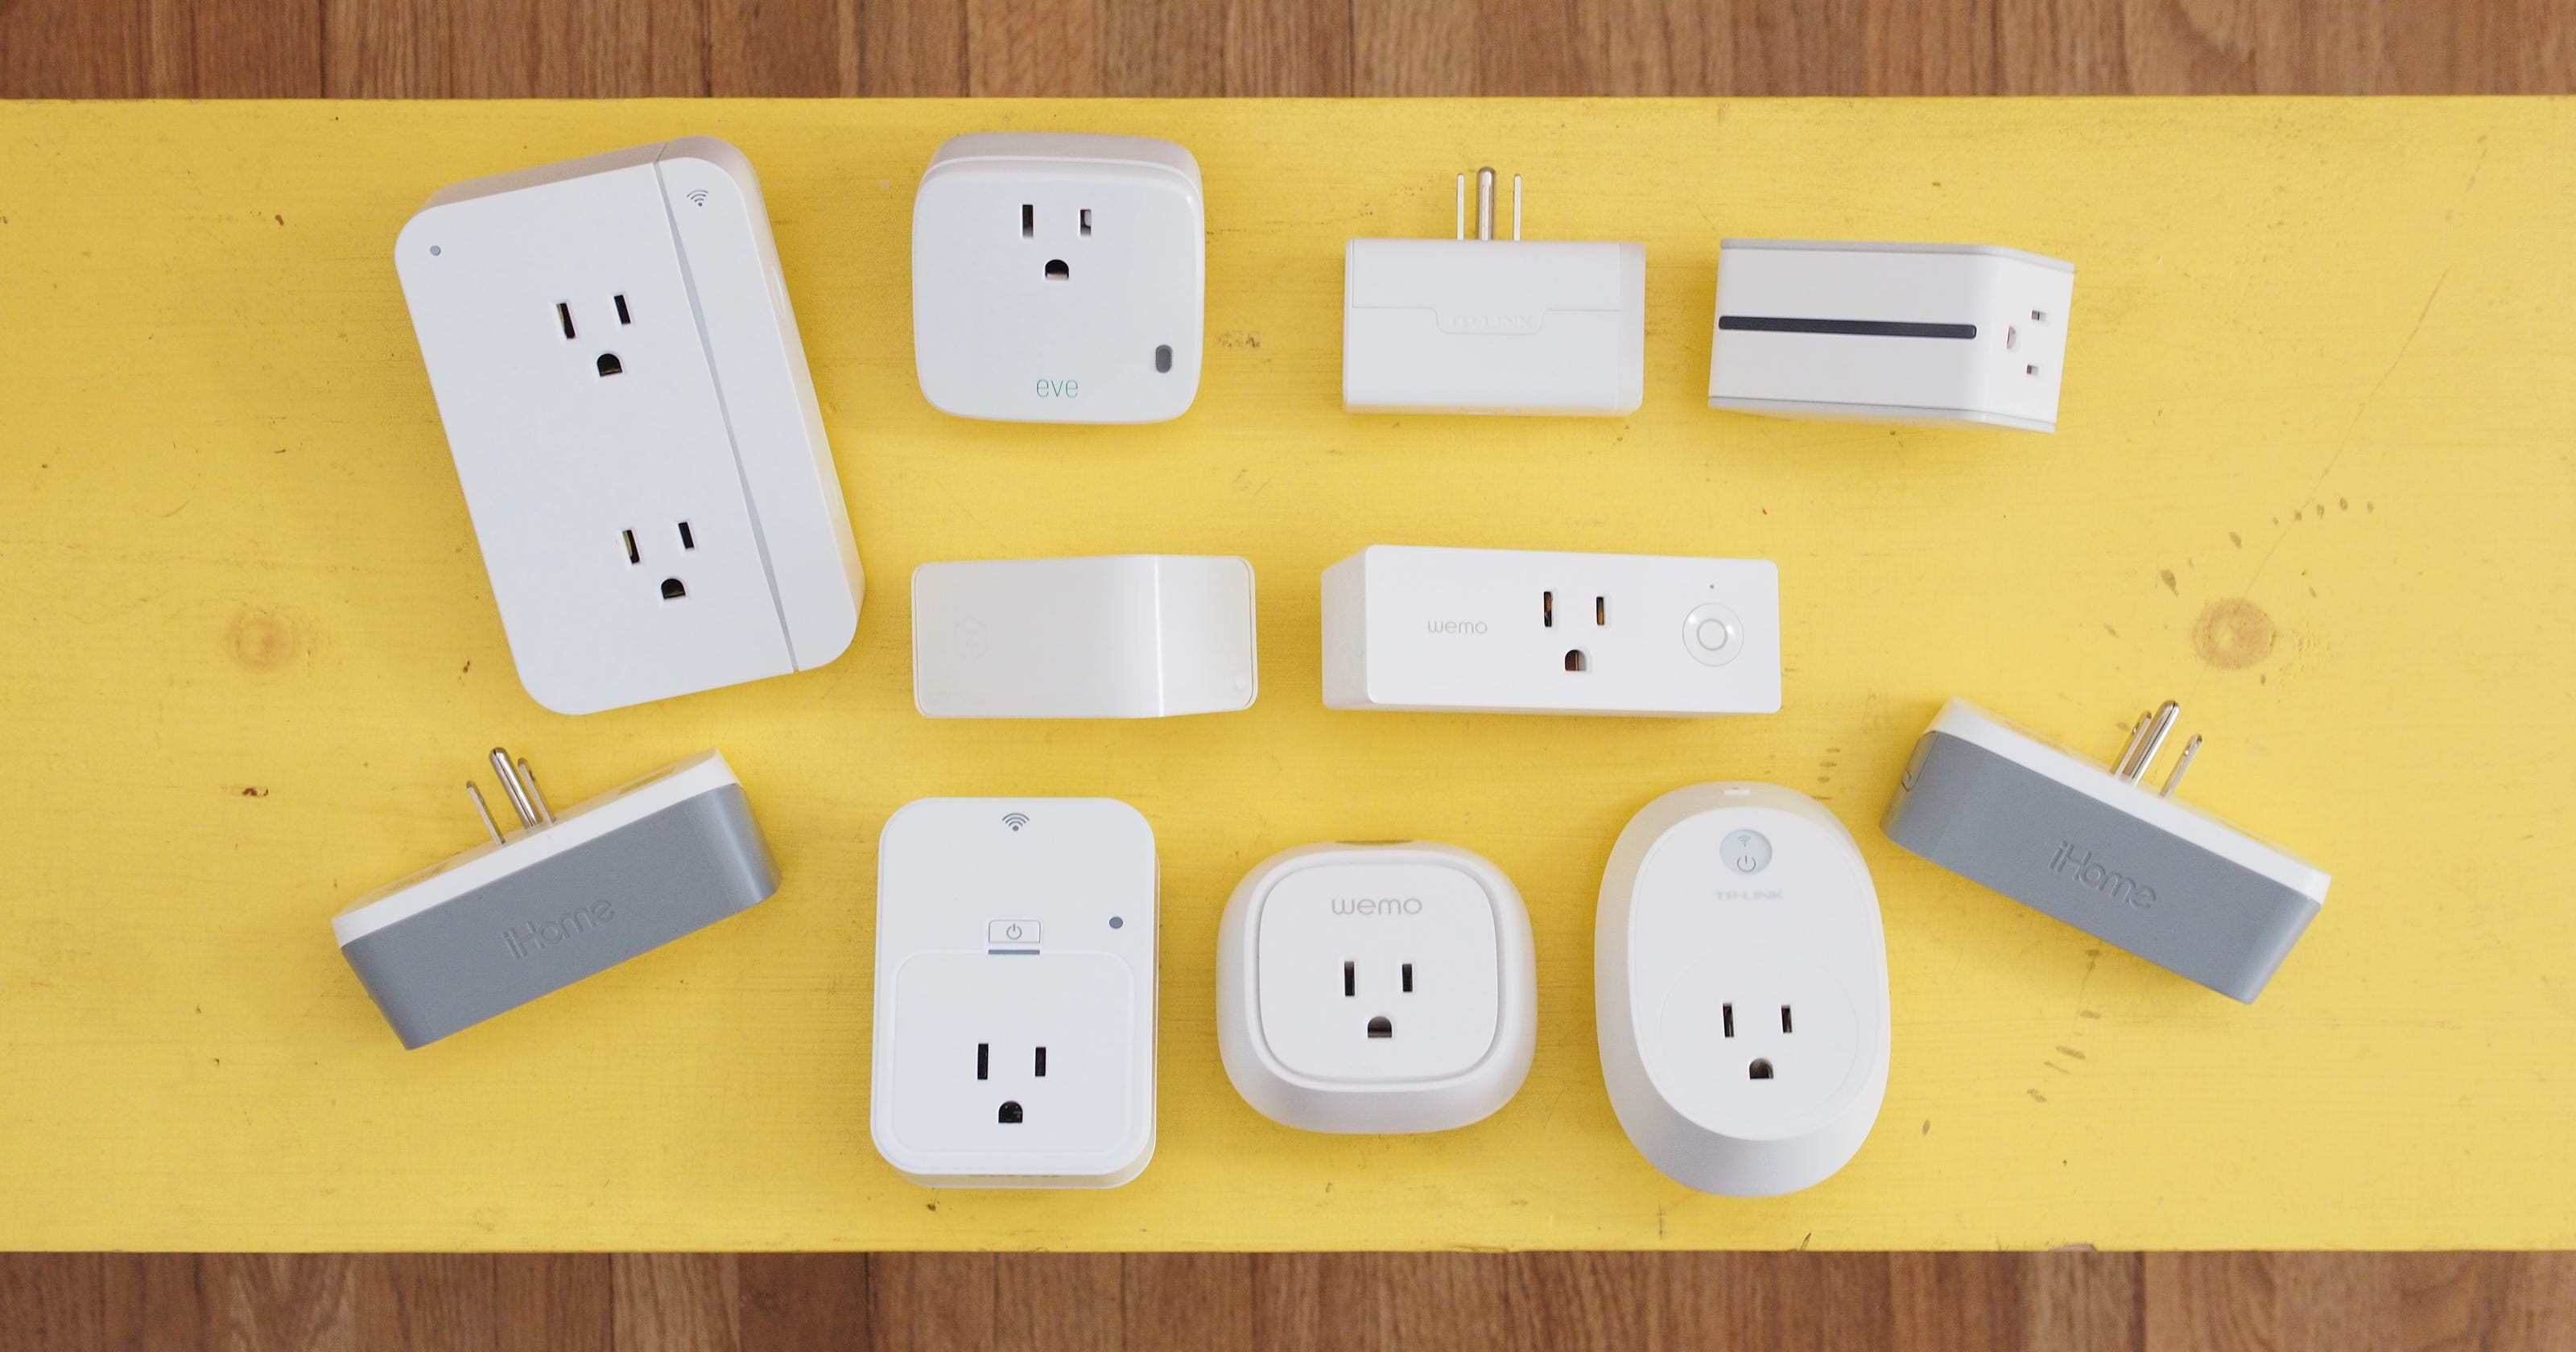 The 9 best smart plugs for Amazon Alexa, HomeKit, and more